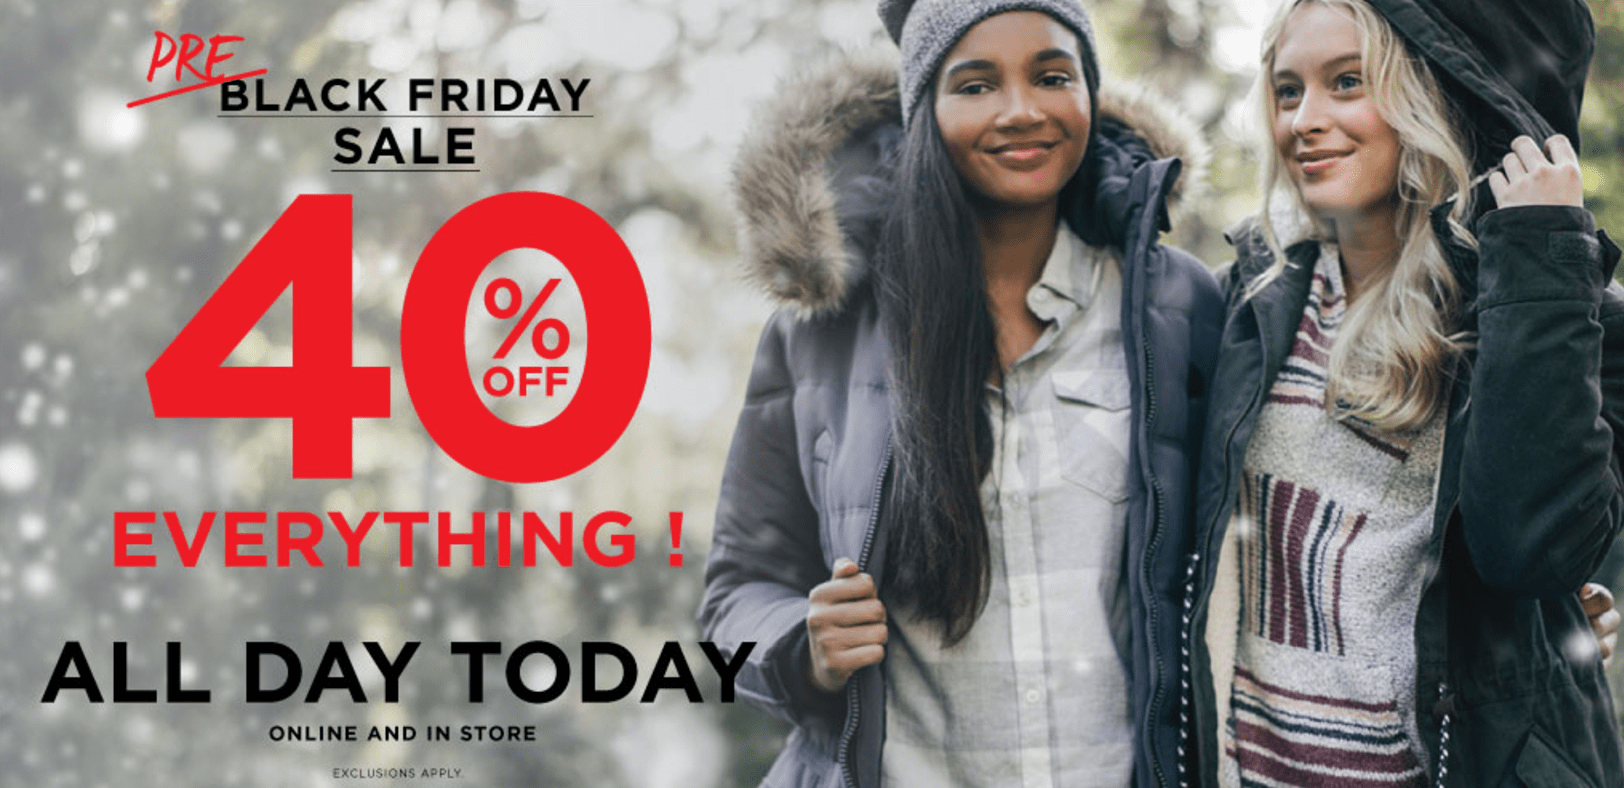 Bluenotes Canada Pre-Black Friday Sale: Today Only Save 40% Off!